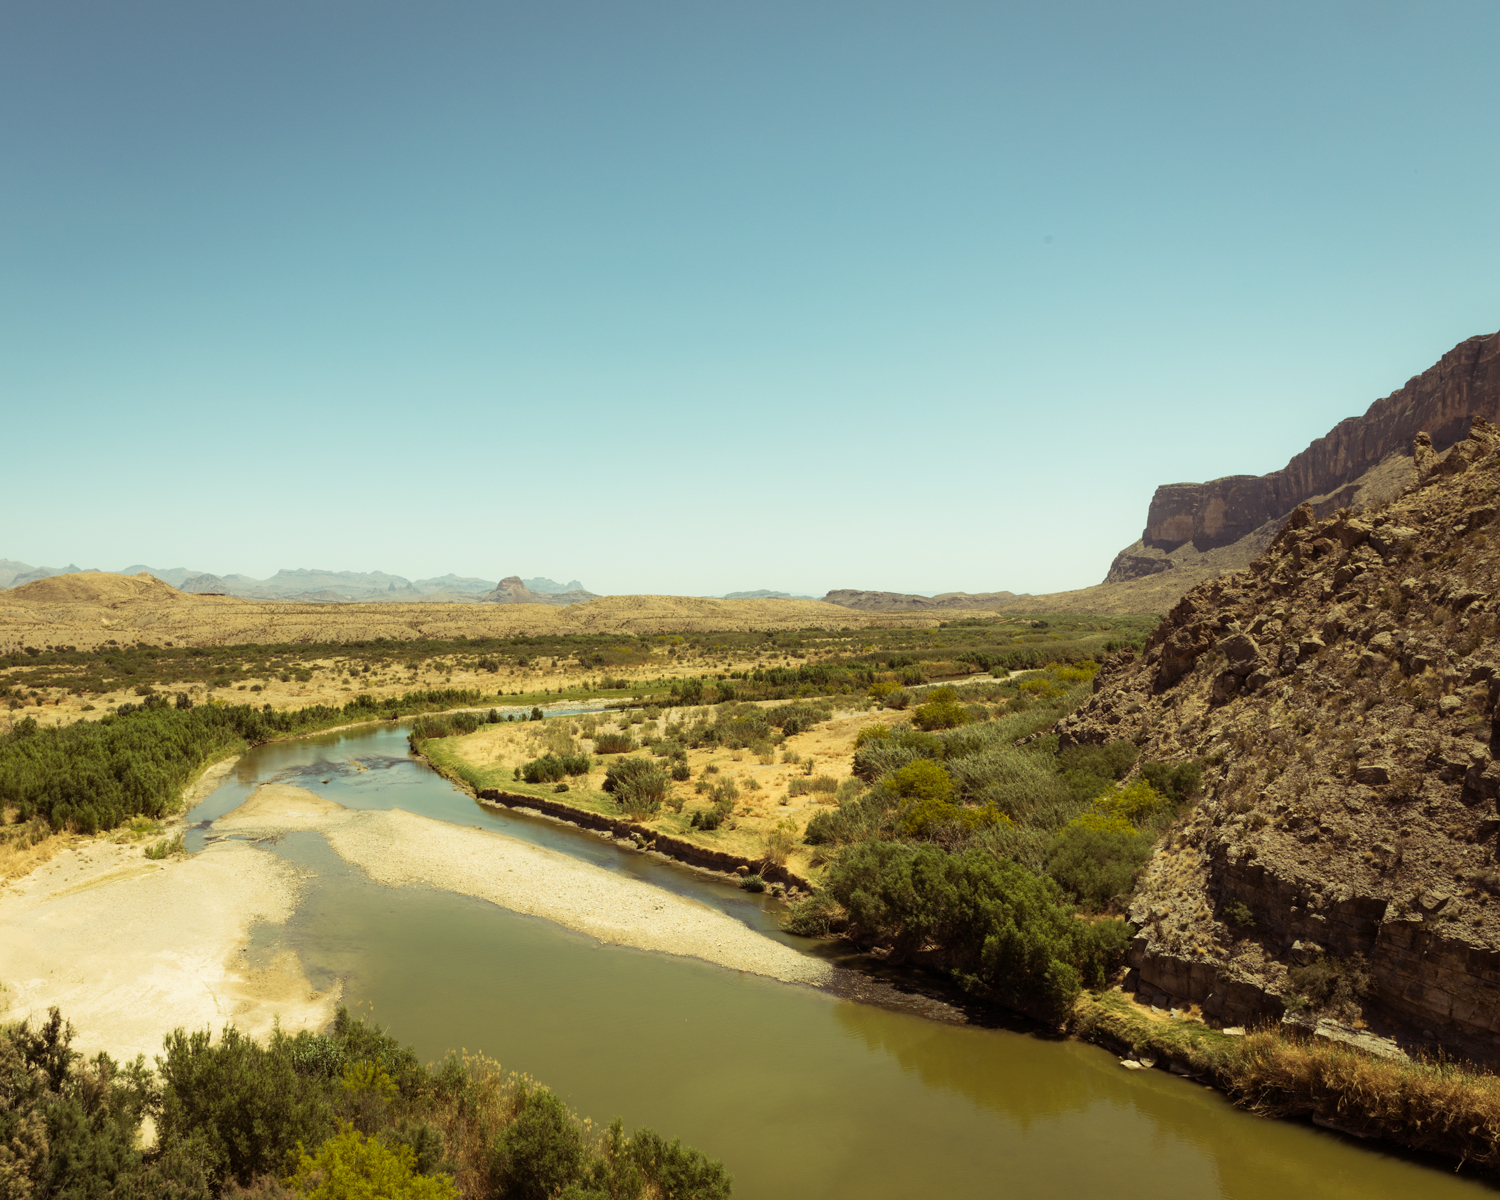 Big_Bend_National_Park_02